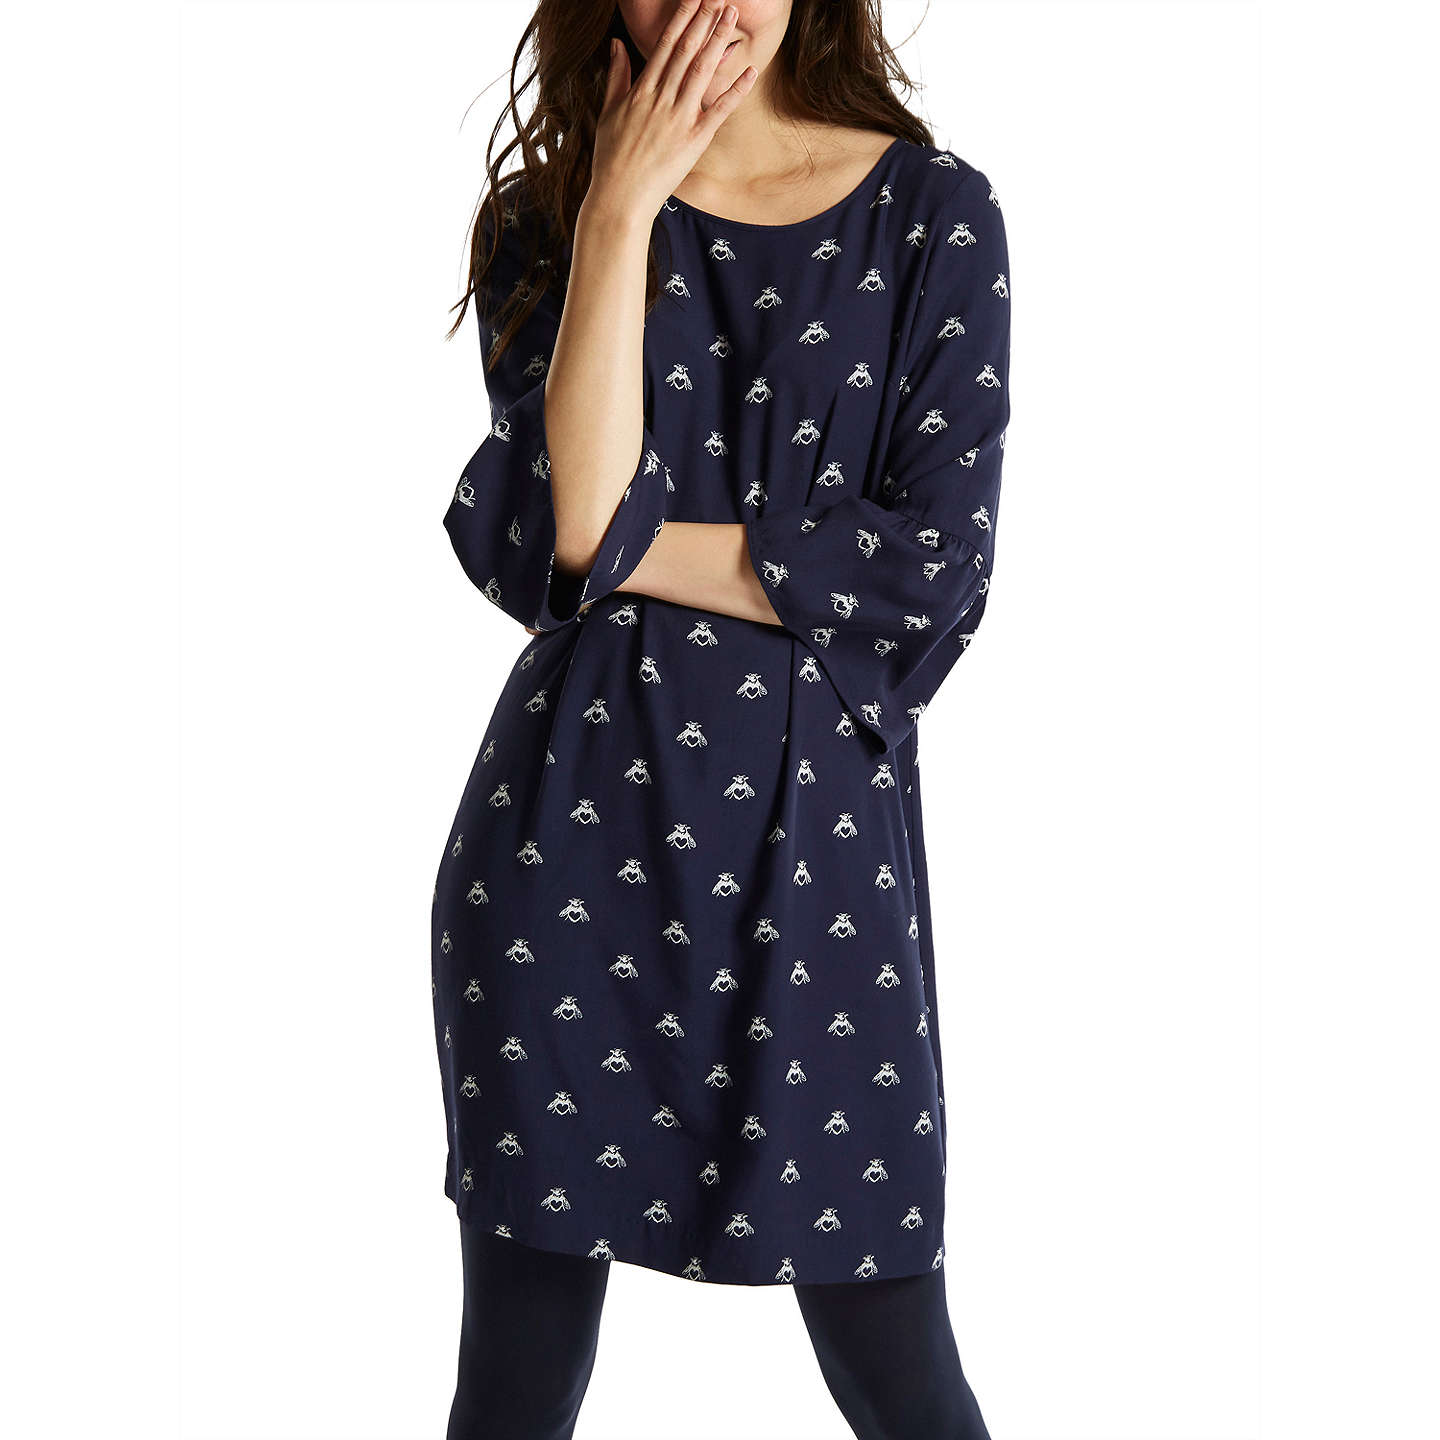 BuyJoules Gardenia Bell Sleeve Dress, Navy Love Bees, 8 Online at johnlewis.com